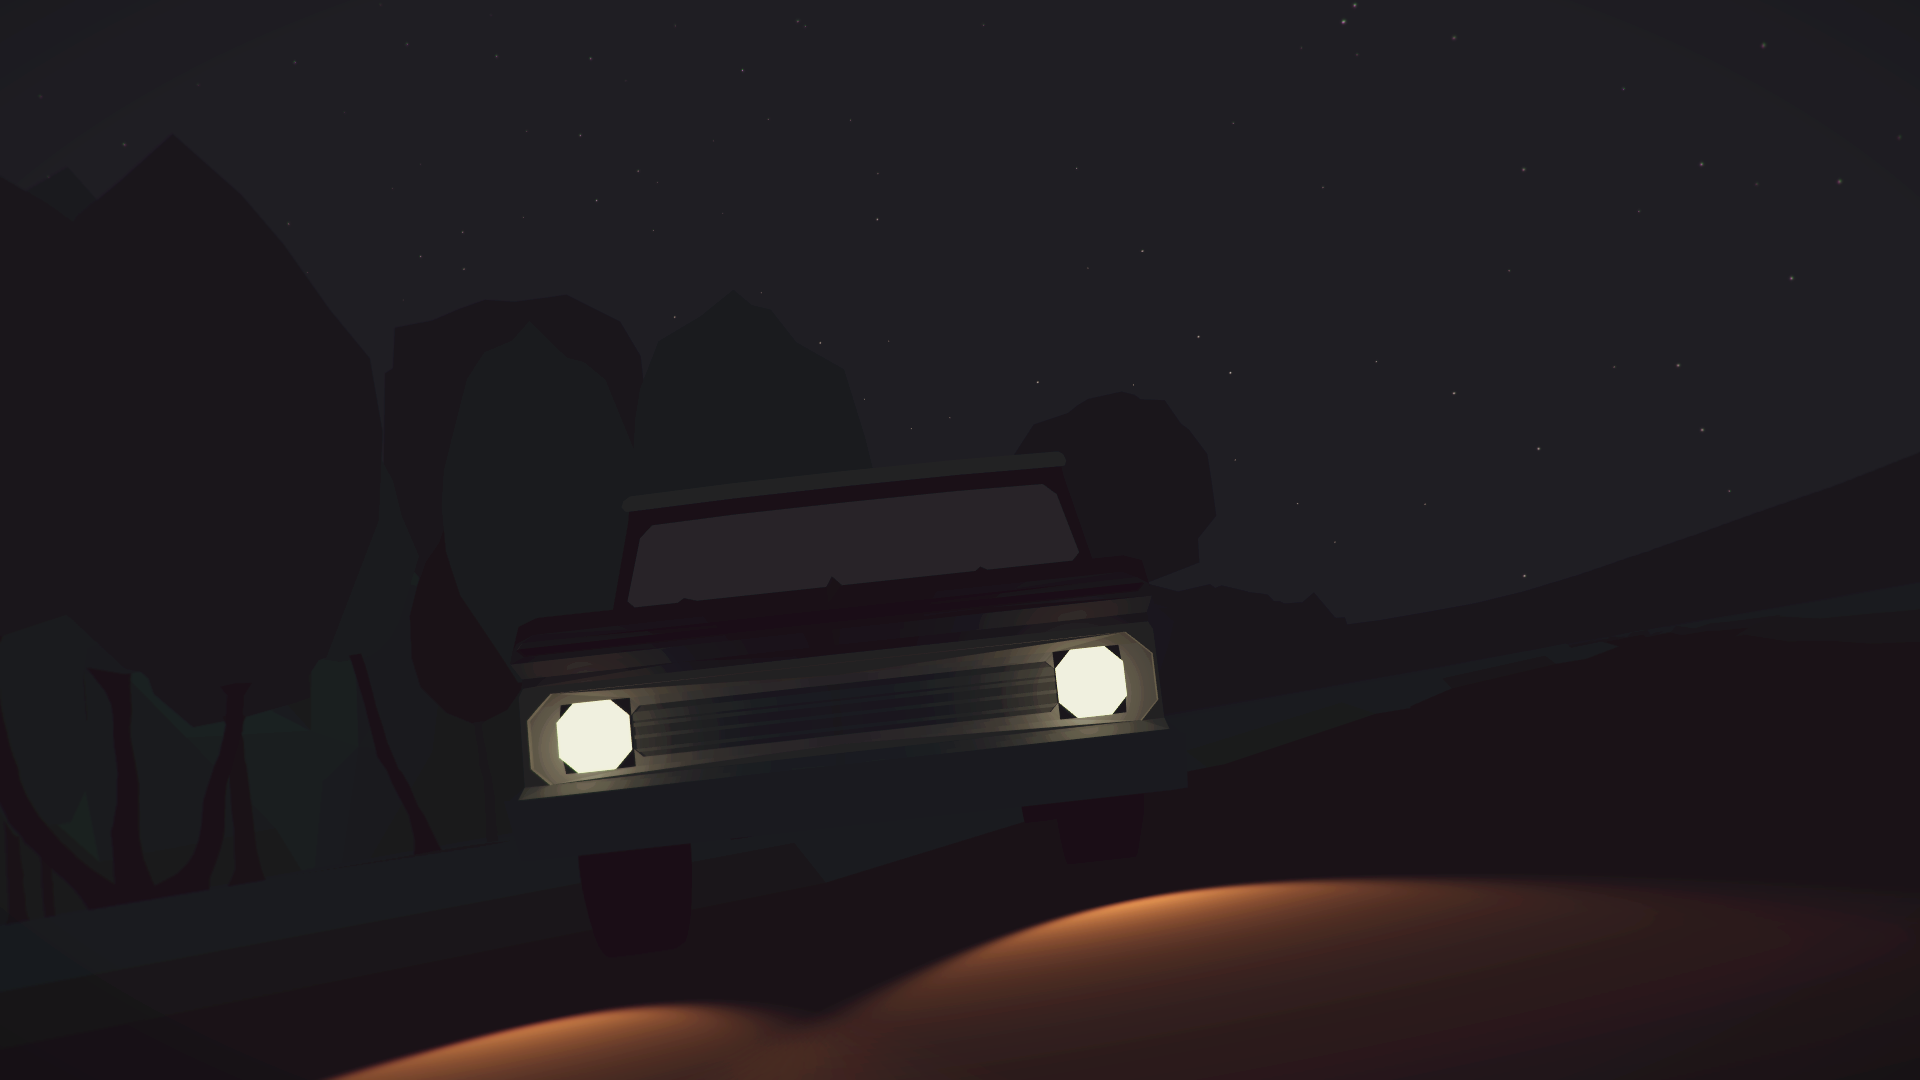 08_Truck.png